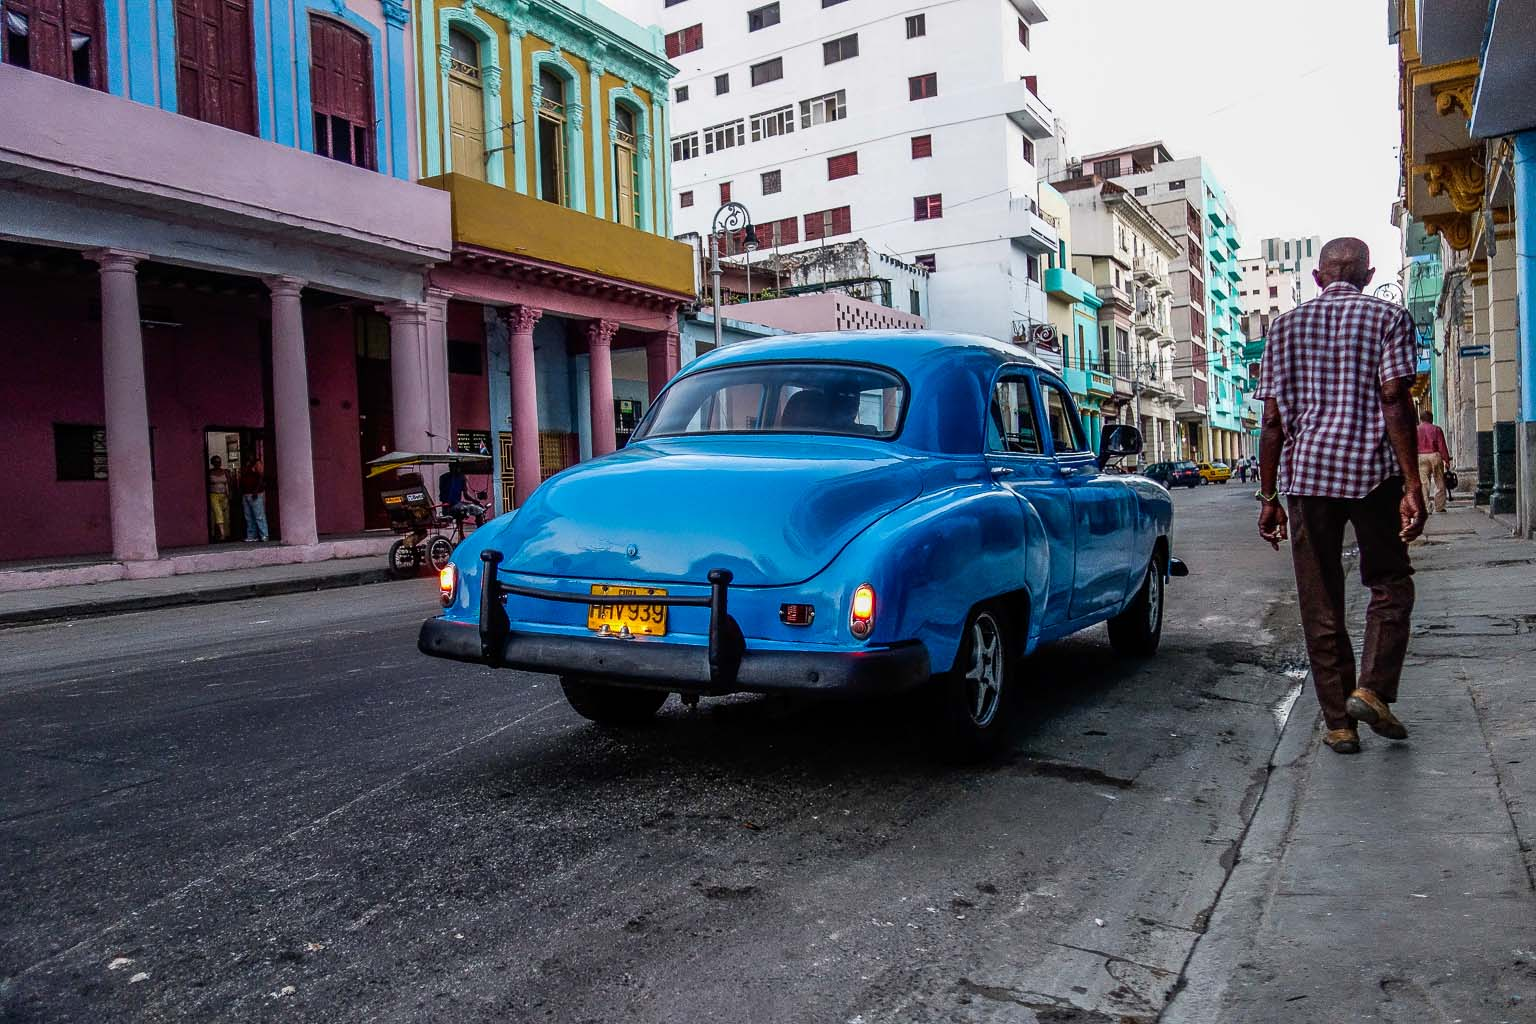 Car parked on Calle Galliano Havana Cuba